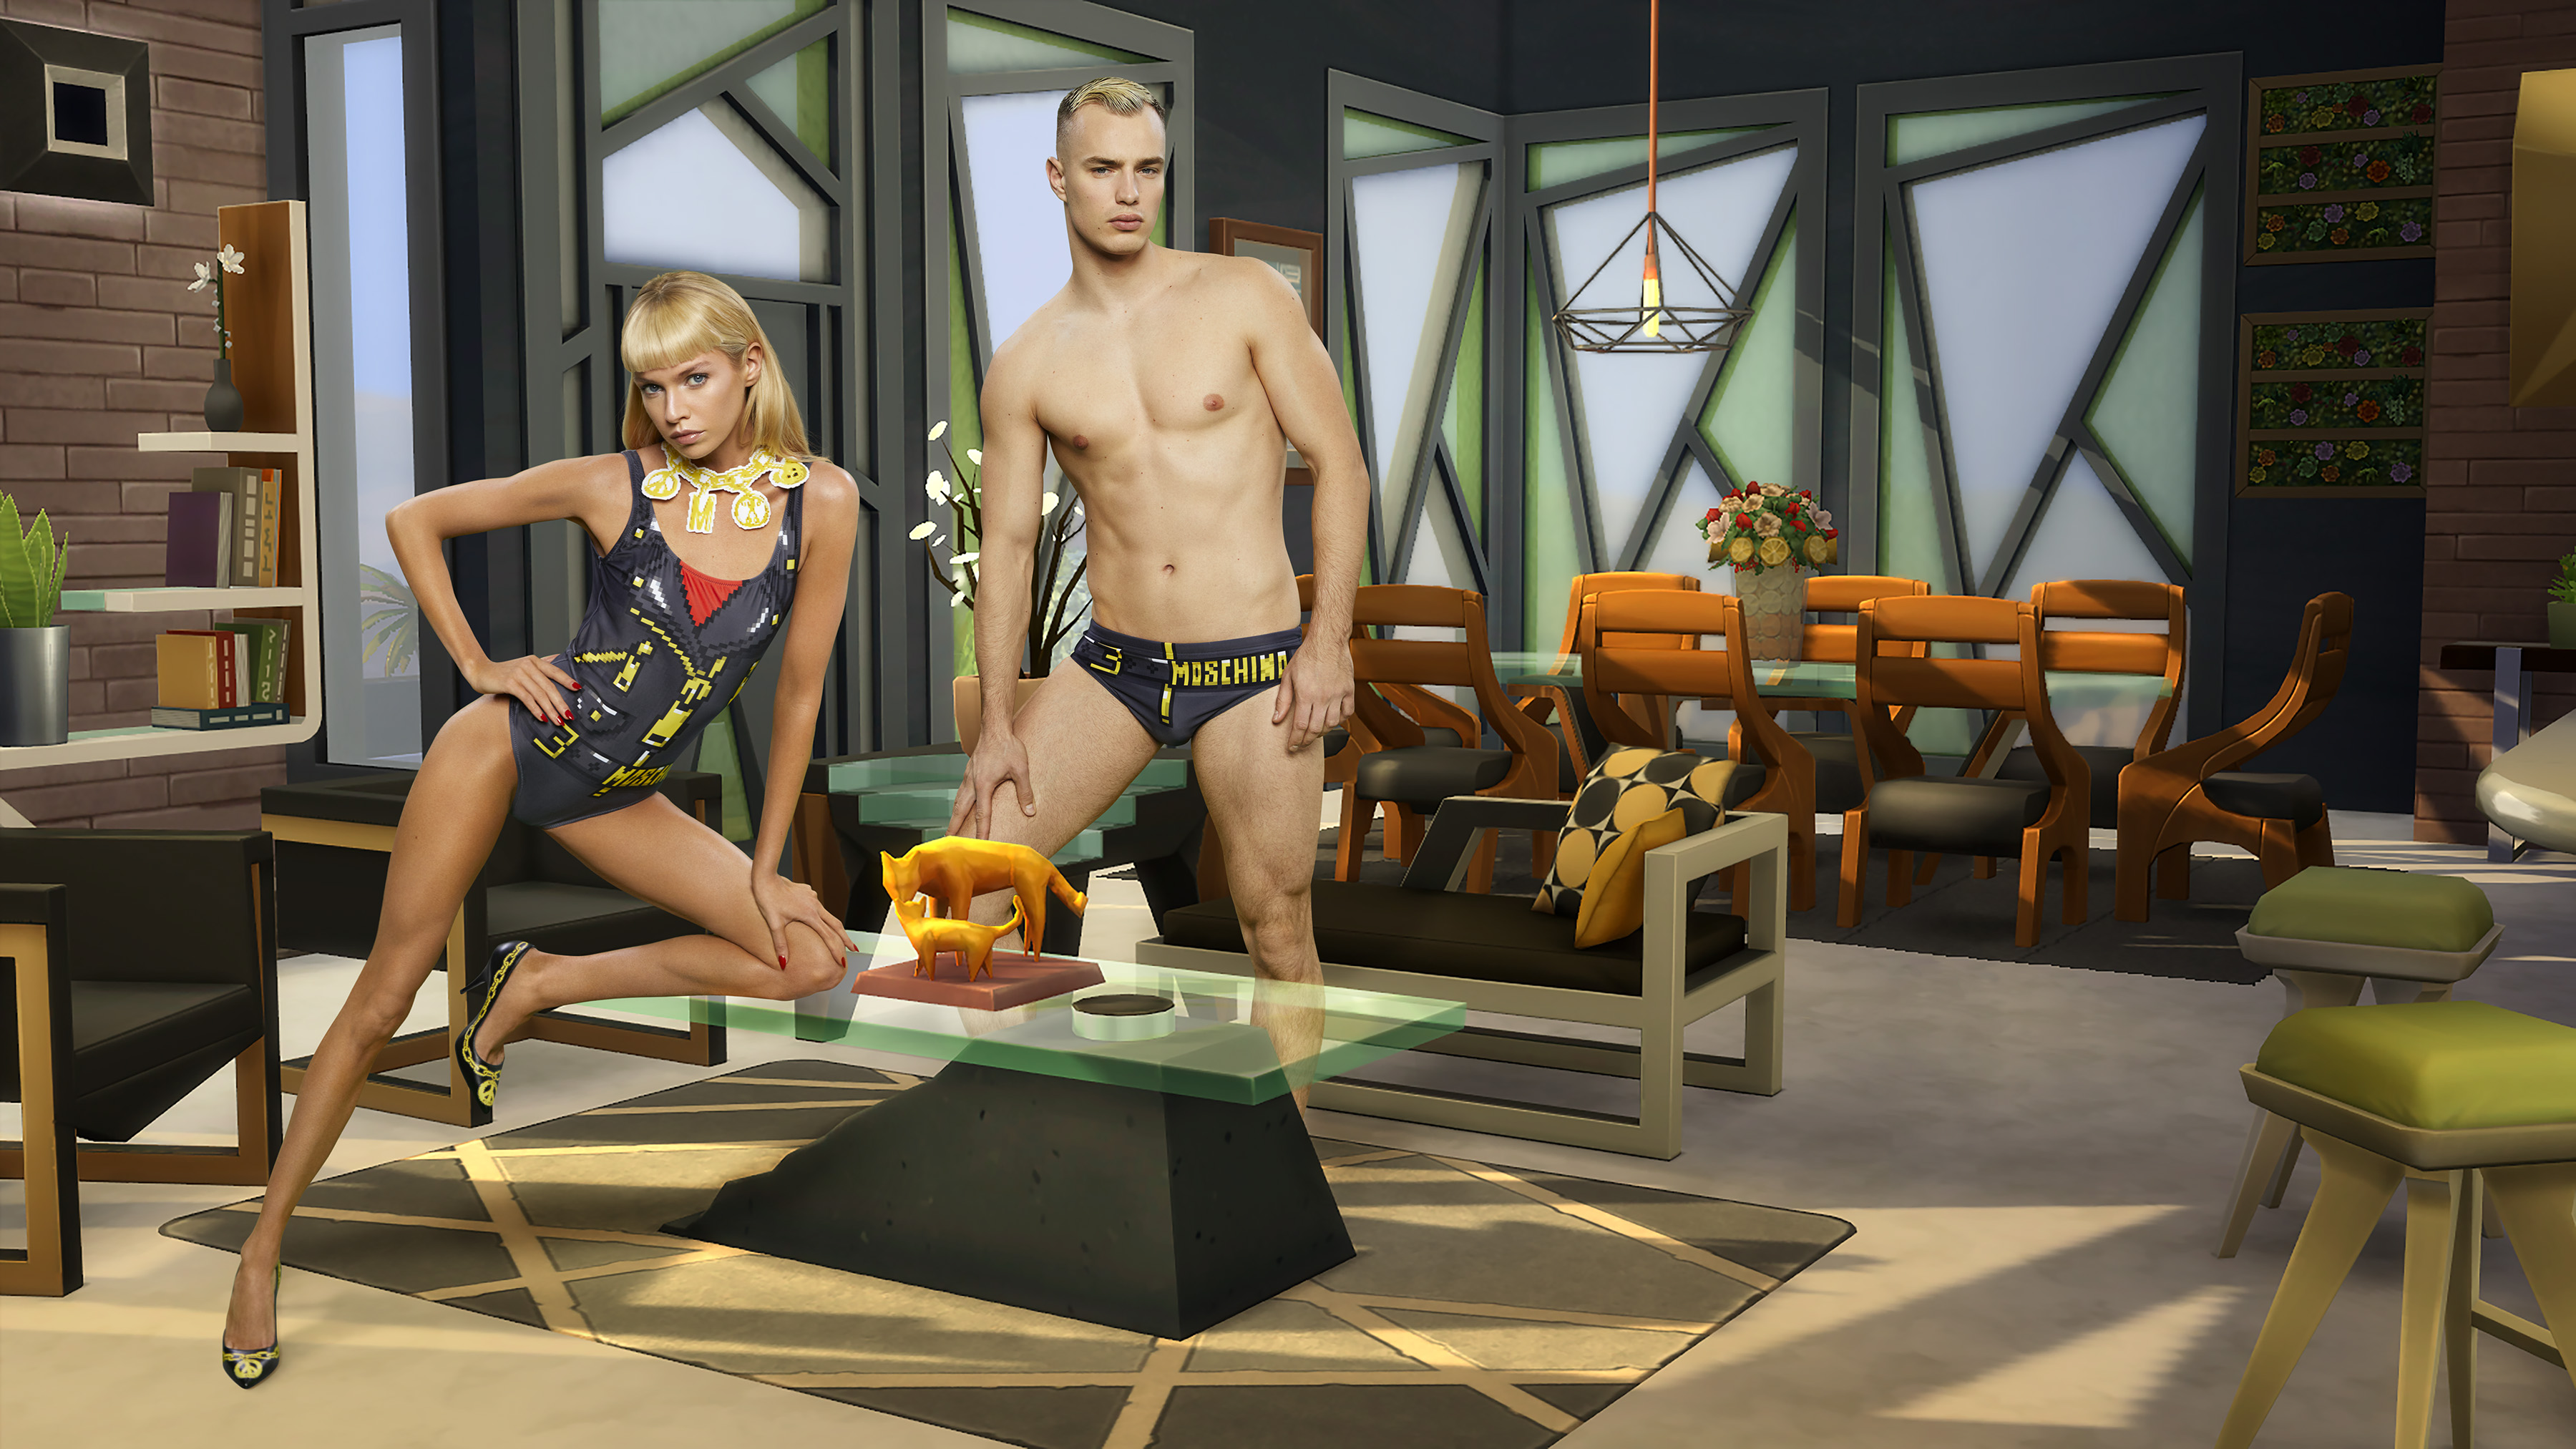 Moschino Is About To Release A Line Inspired By 'The Sims'